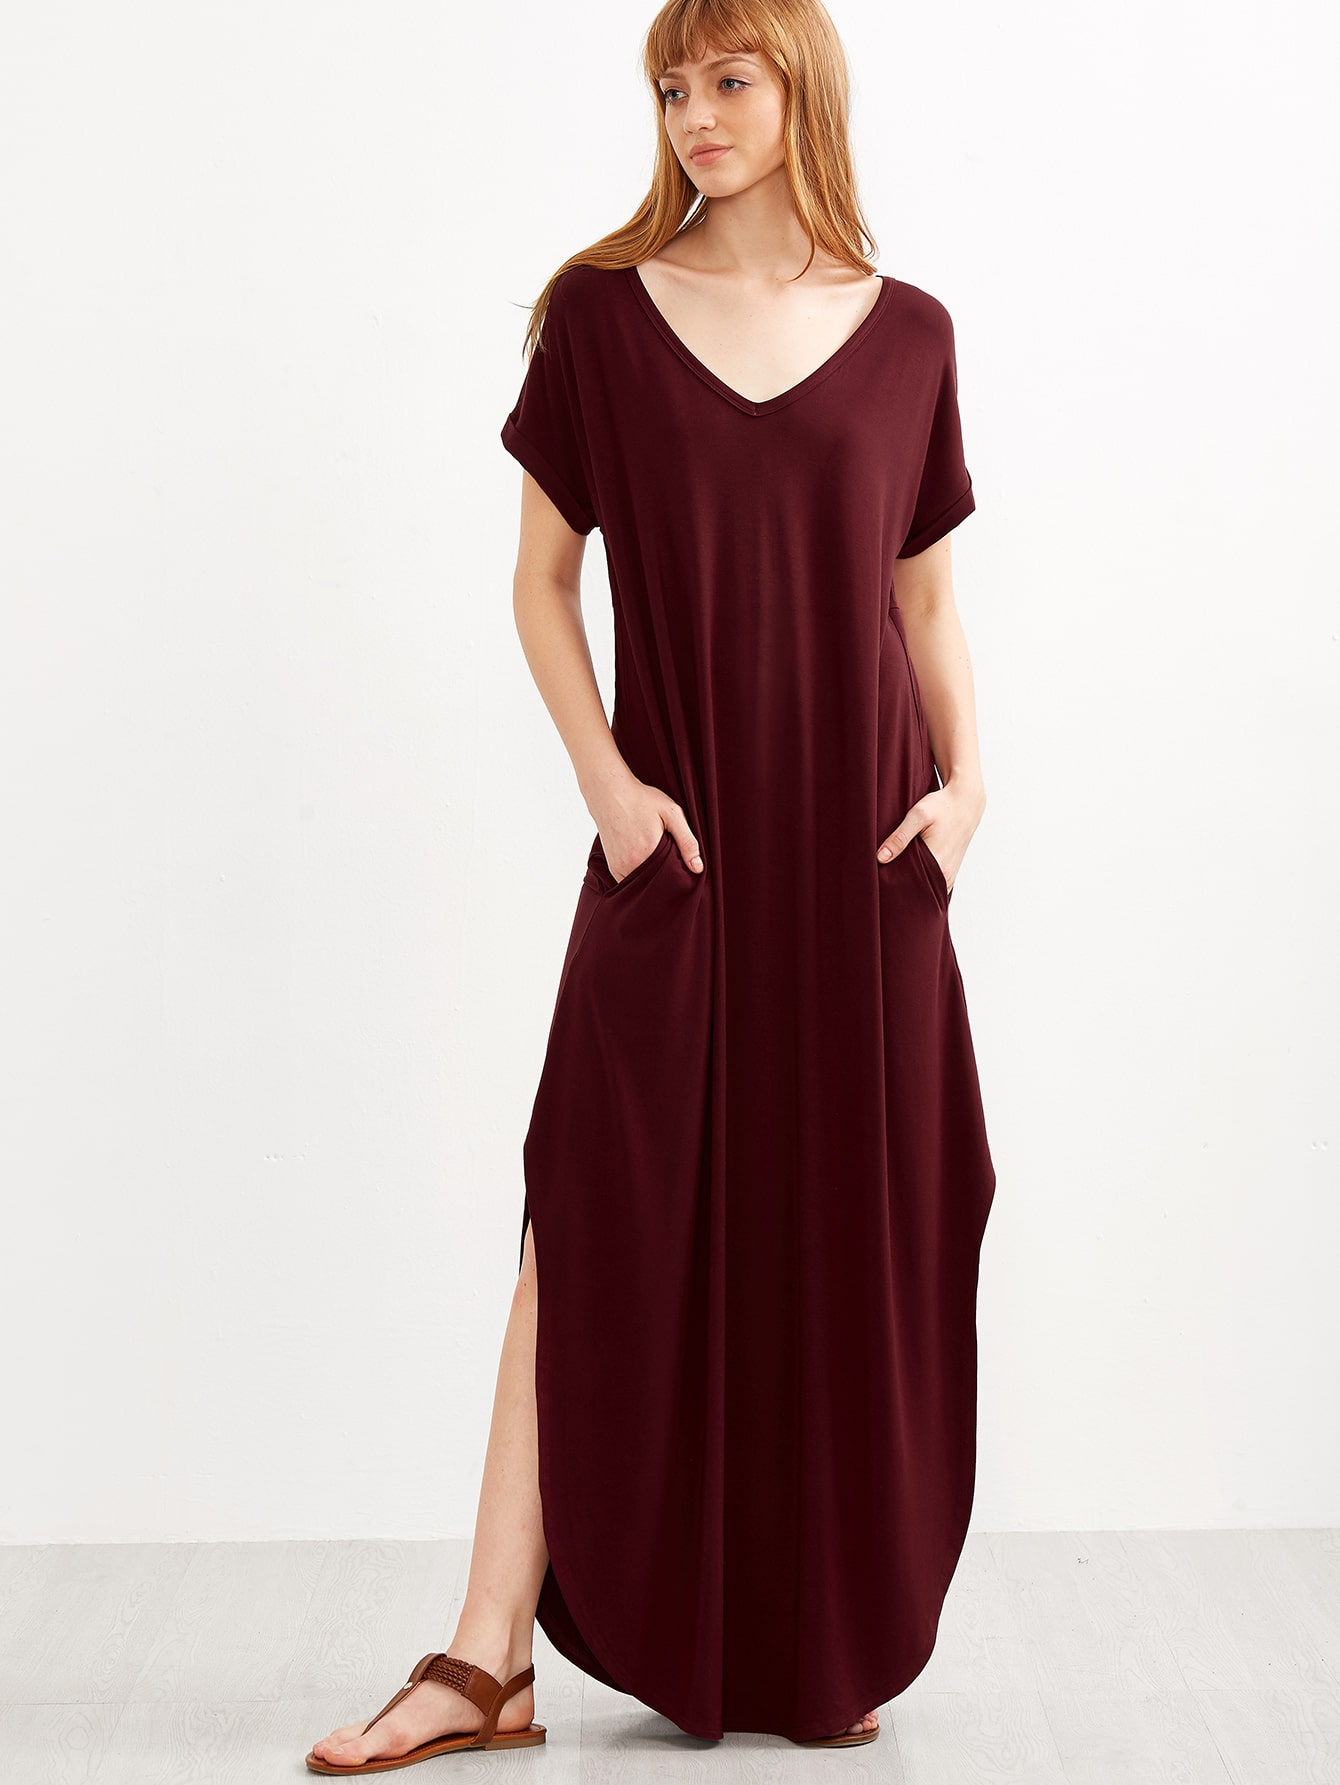 robe t shirt longue avec fentes rouge bordeaux french shein sheinside. Black Bedroom Furniture Sets. Home Design Ideas